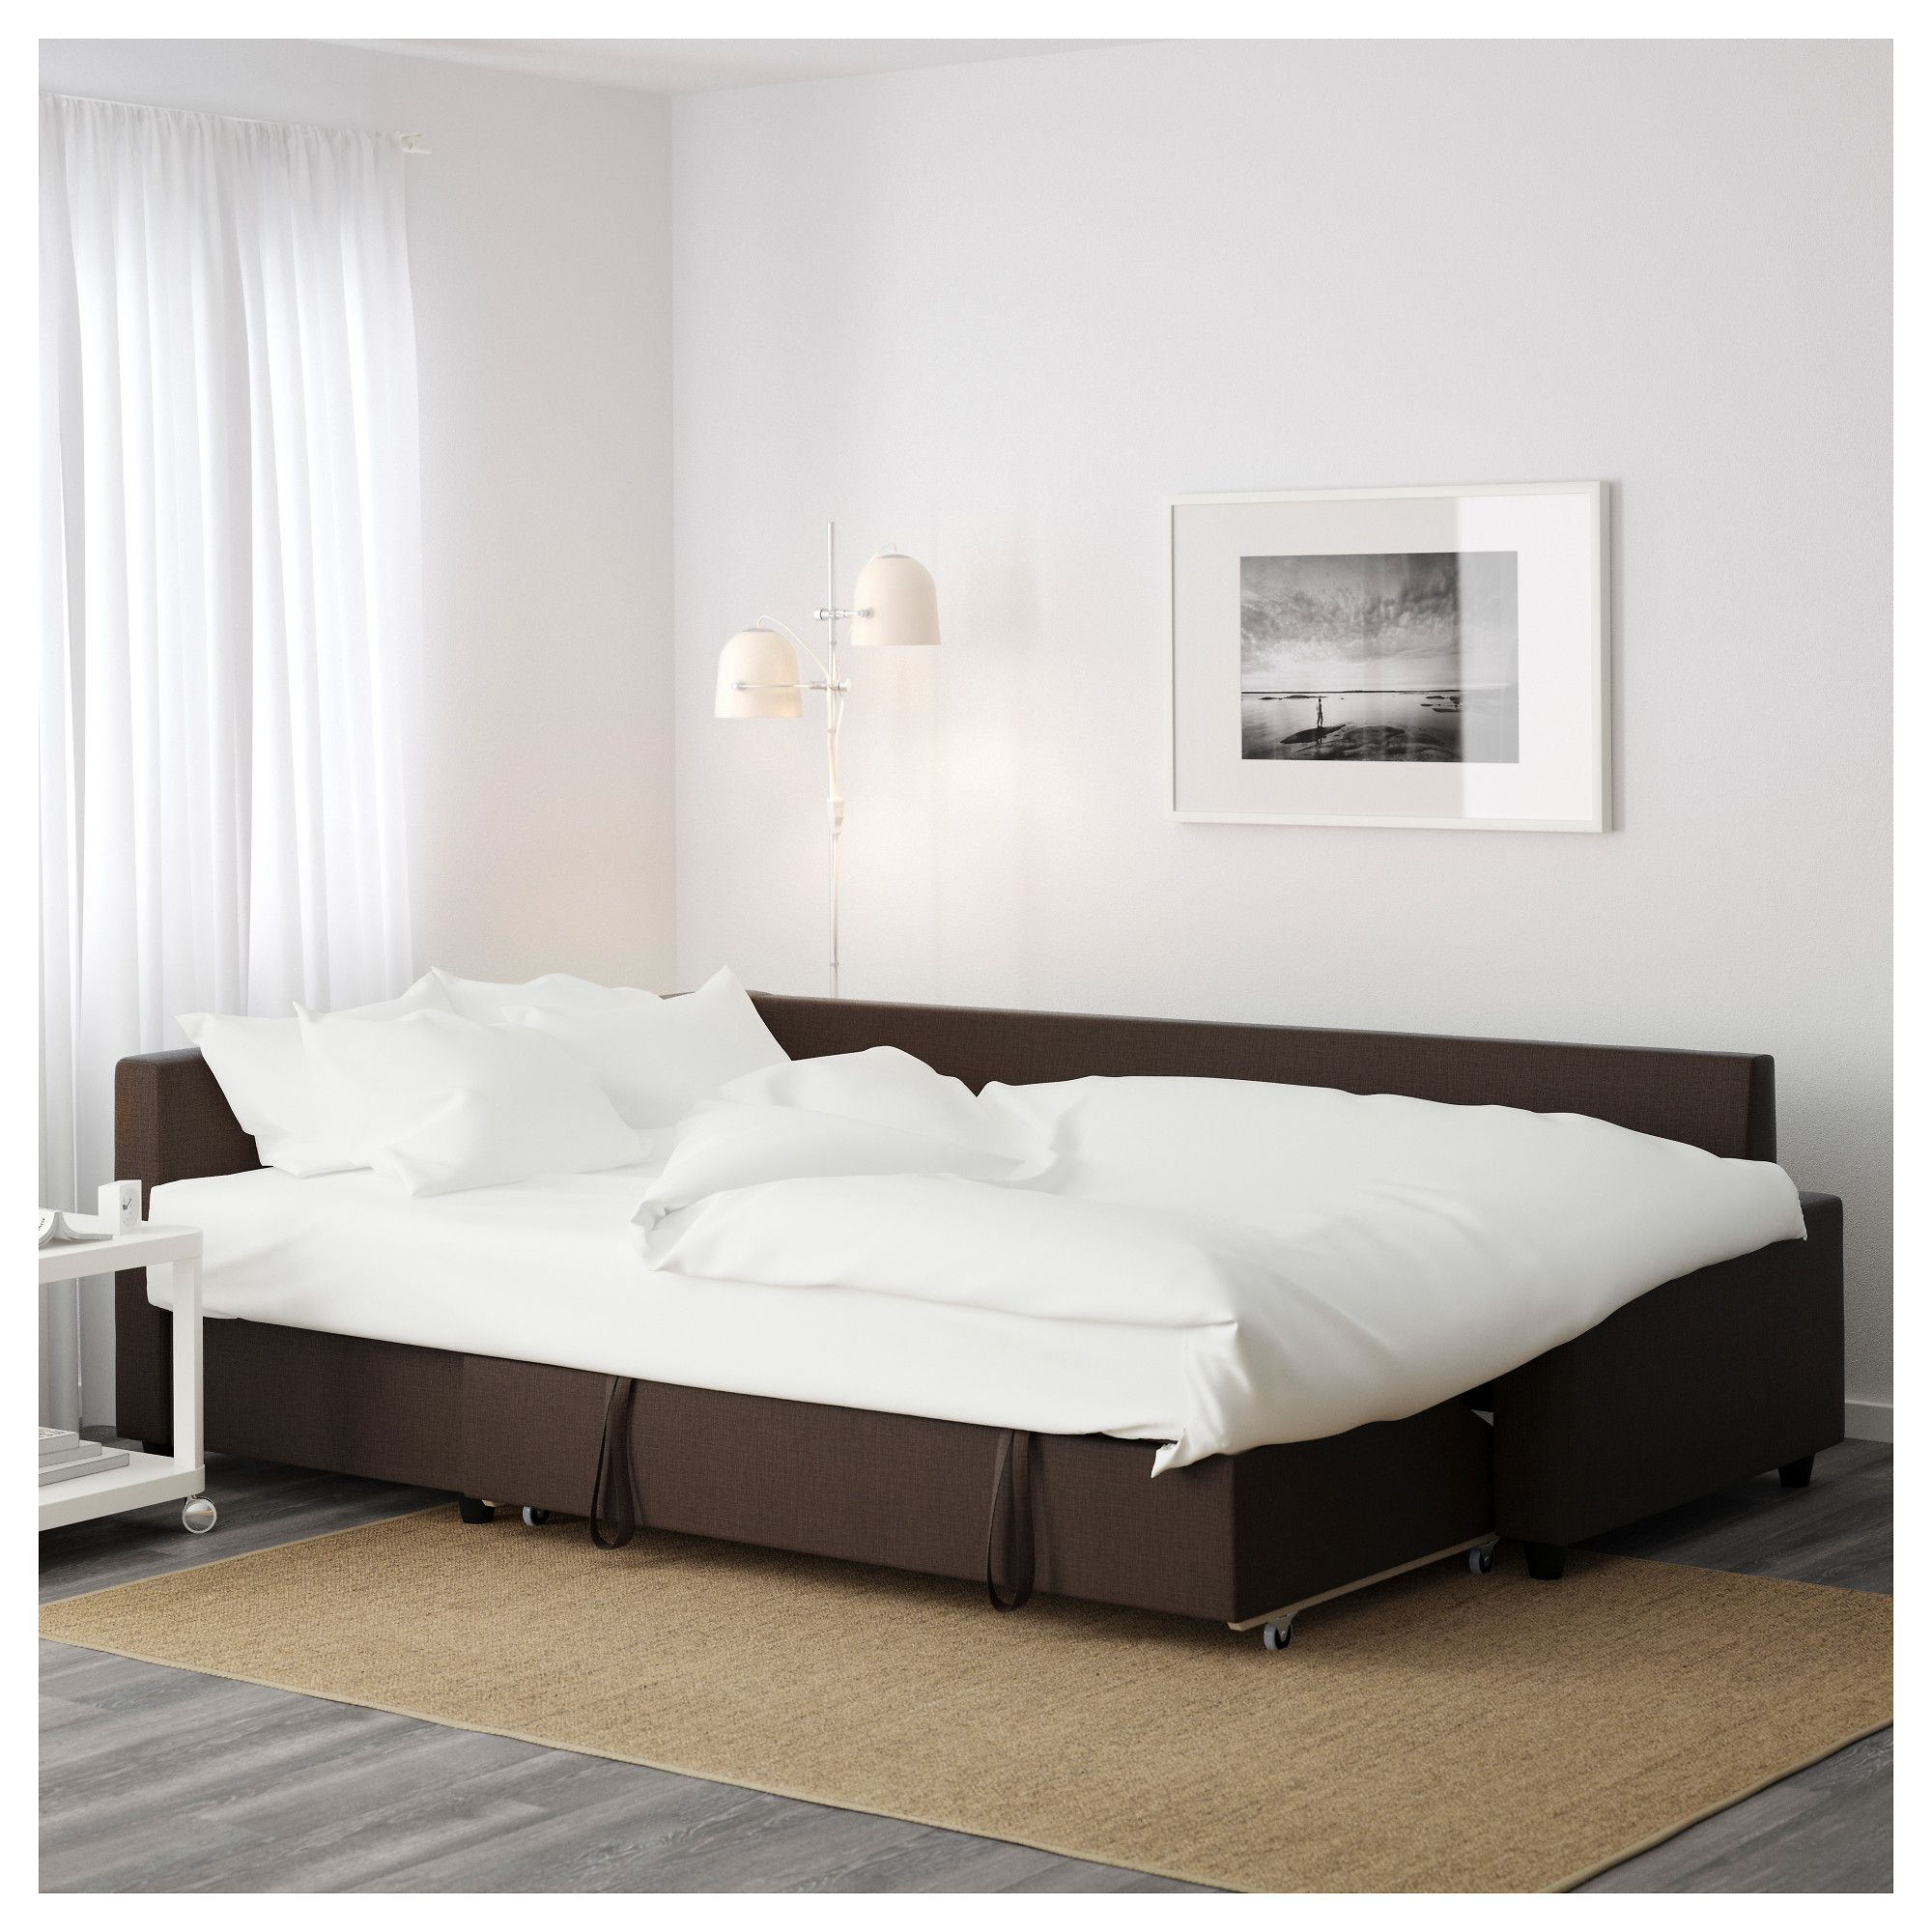 Furniture and Home Furnishings | Bedroom | Corner sofa bed with ...